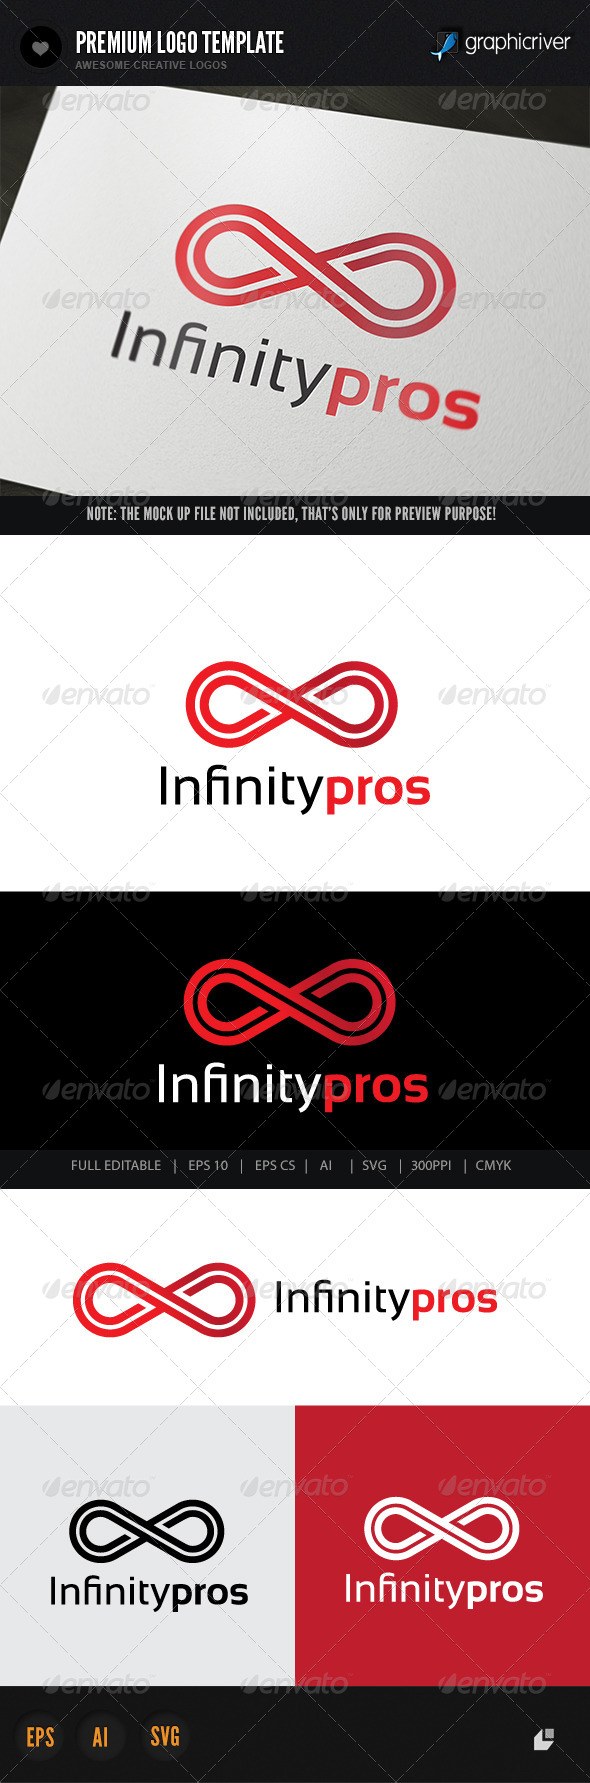 Infinity Pros - Abstract Logo Templates